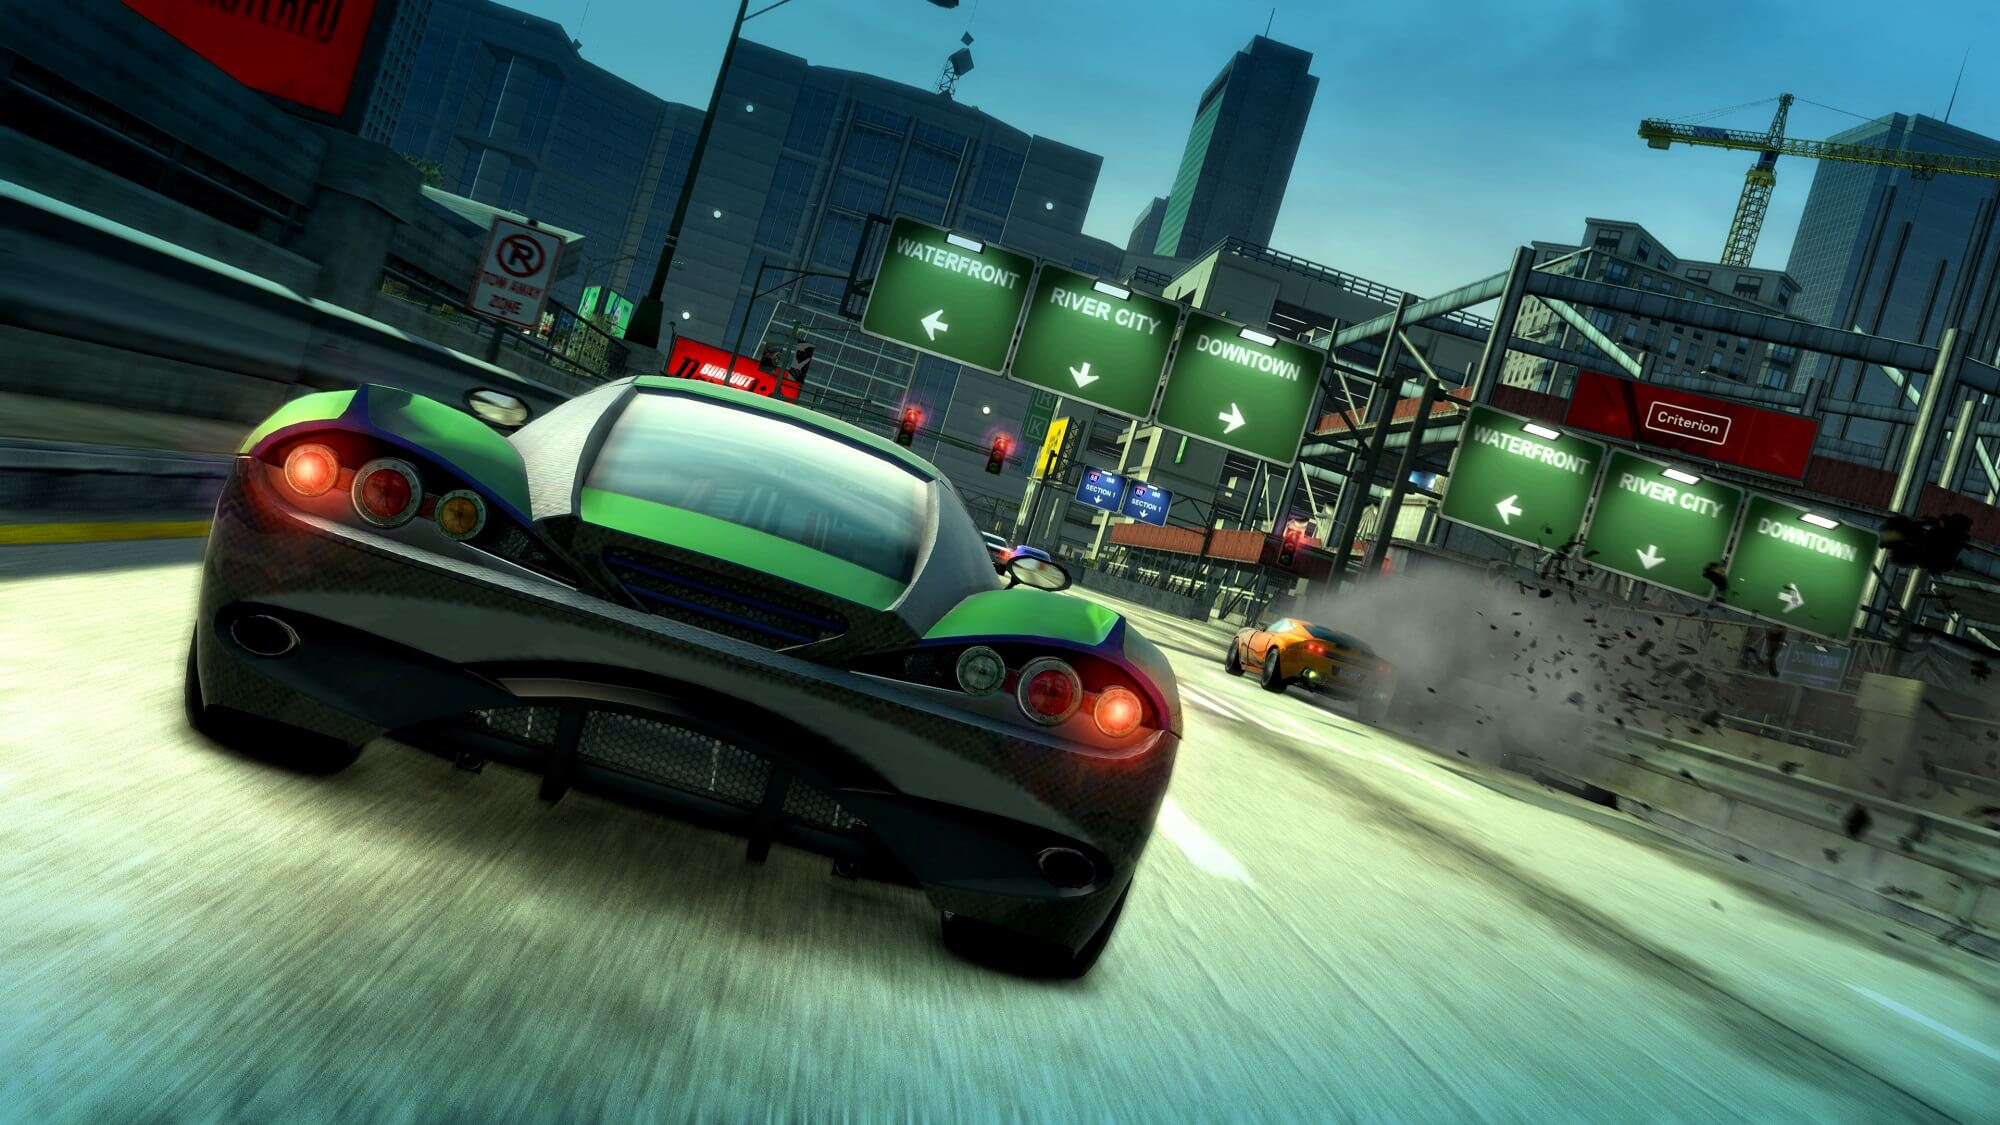 Burnout Paradise Remastered Is Out On June 19 According To The Switch Eshop